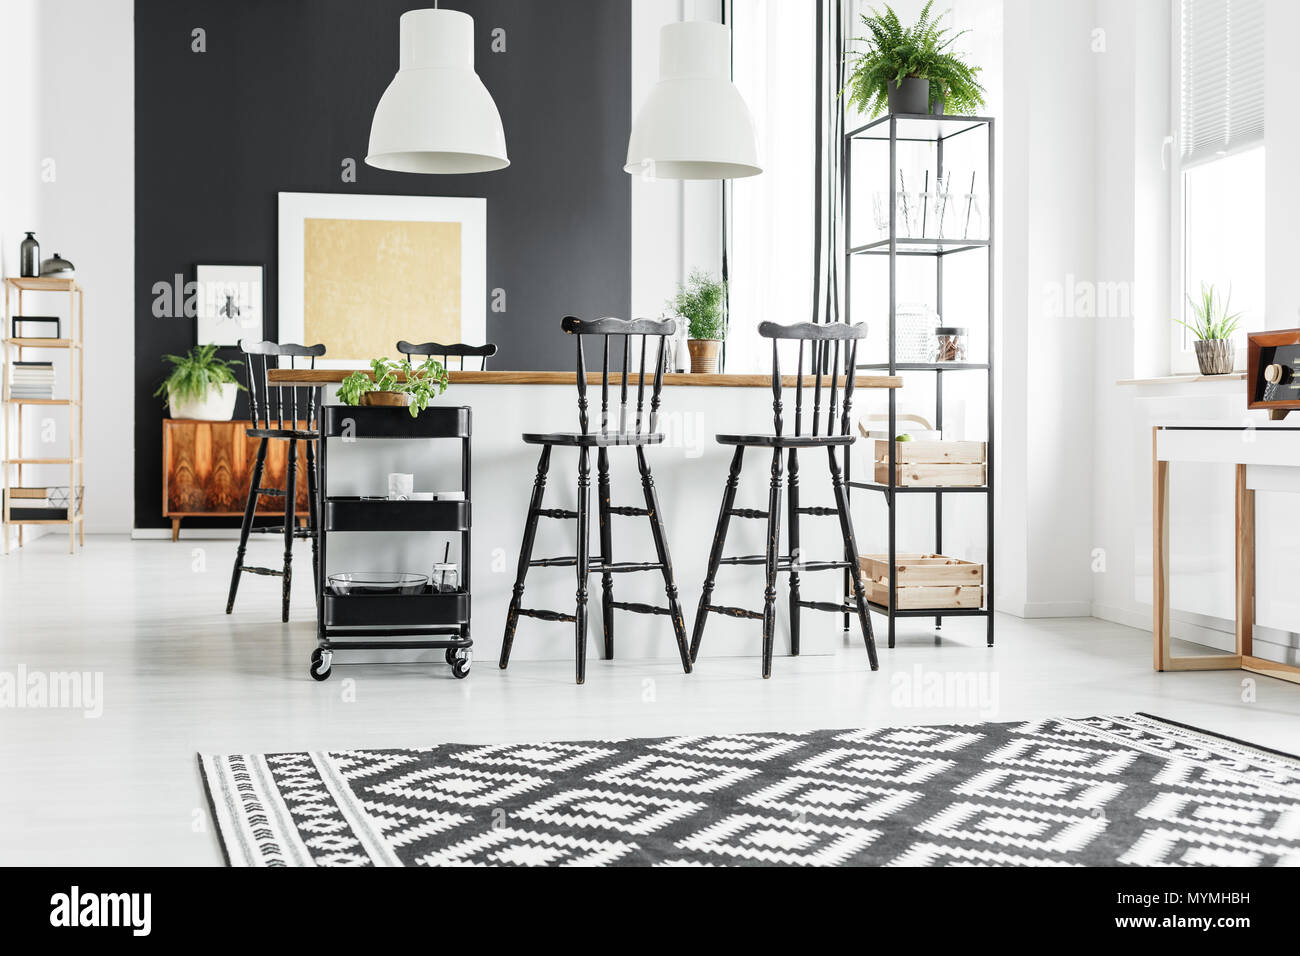 Black And White Geometric Carpet In Rustic Kitchen With Bar Stools At Wooden Countertop Stock Photo Alamy